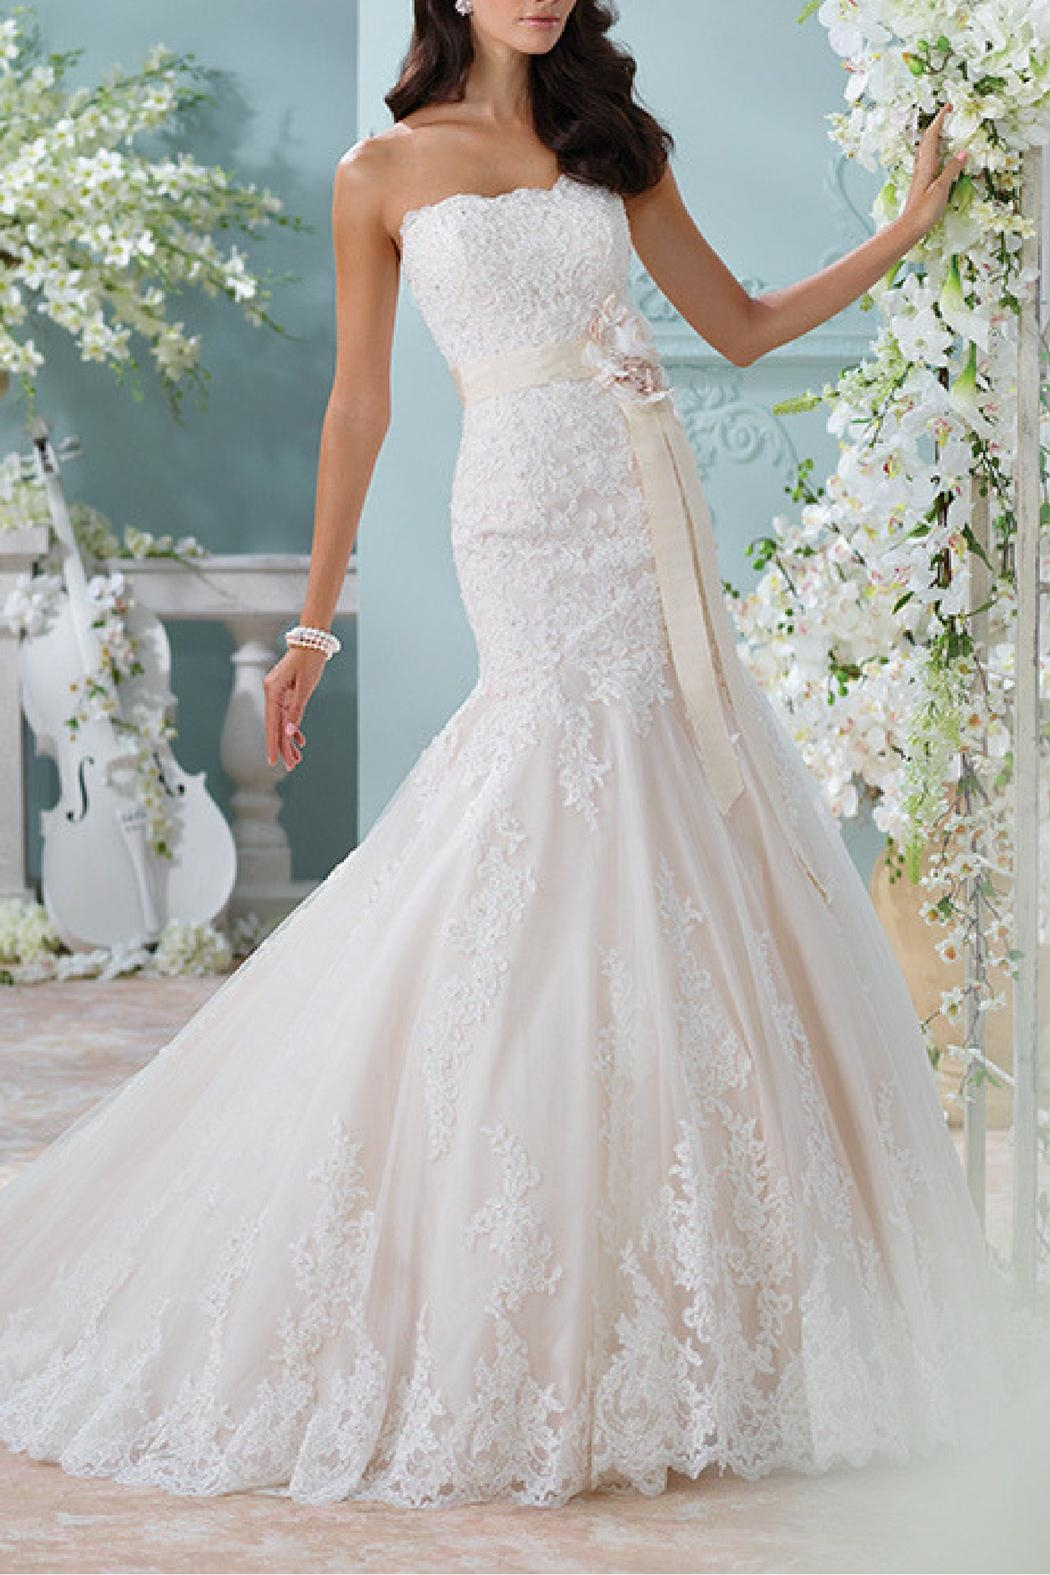 David Tutera for Mon Cheri Strapless Lace Bridal Dress - Main Image